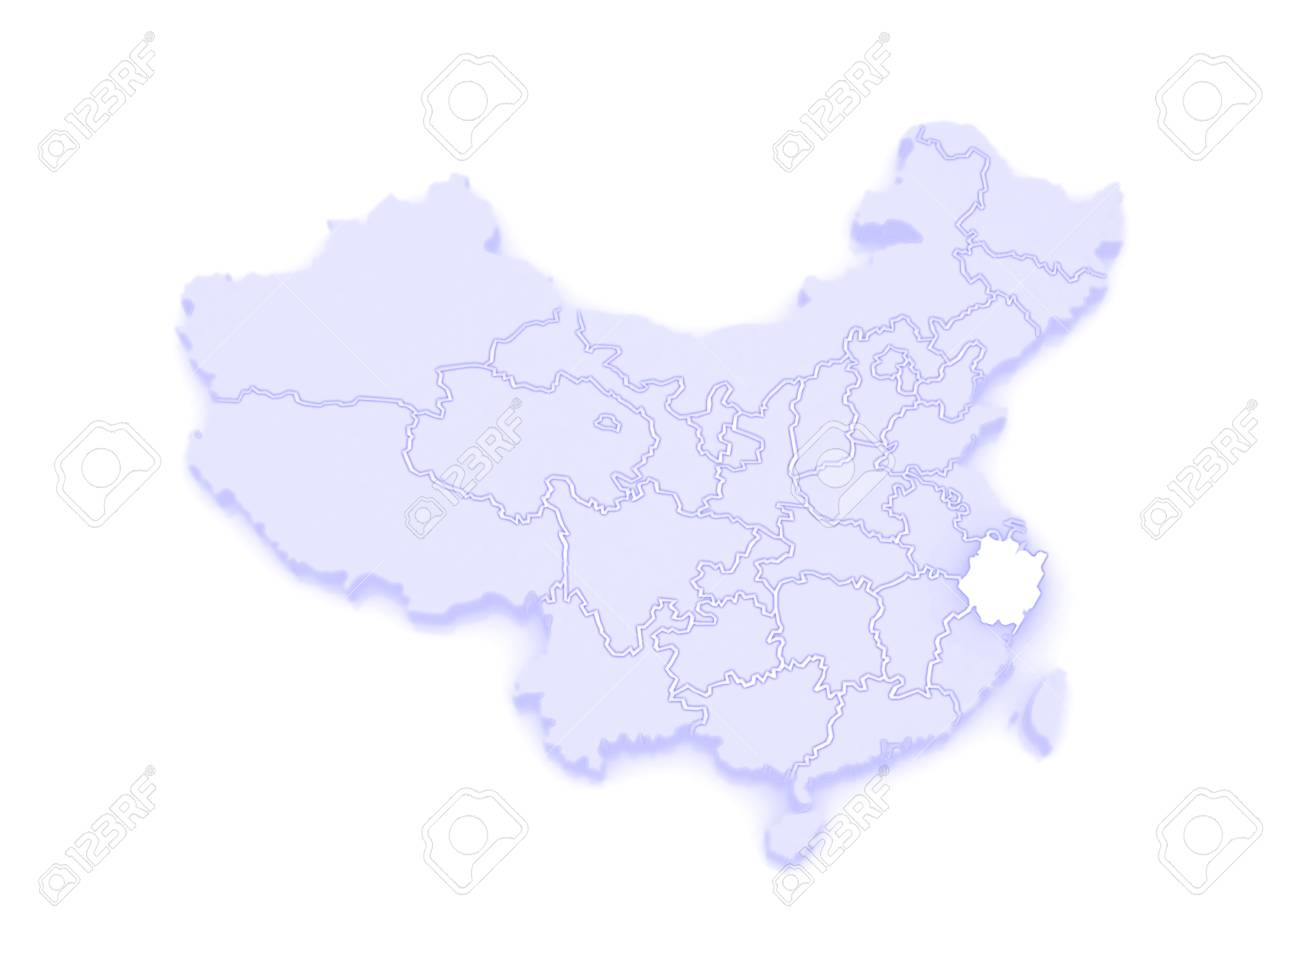 Map Of Zhejiang China 3d Stock Photo Picture And Royalty Free